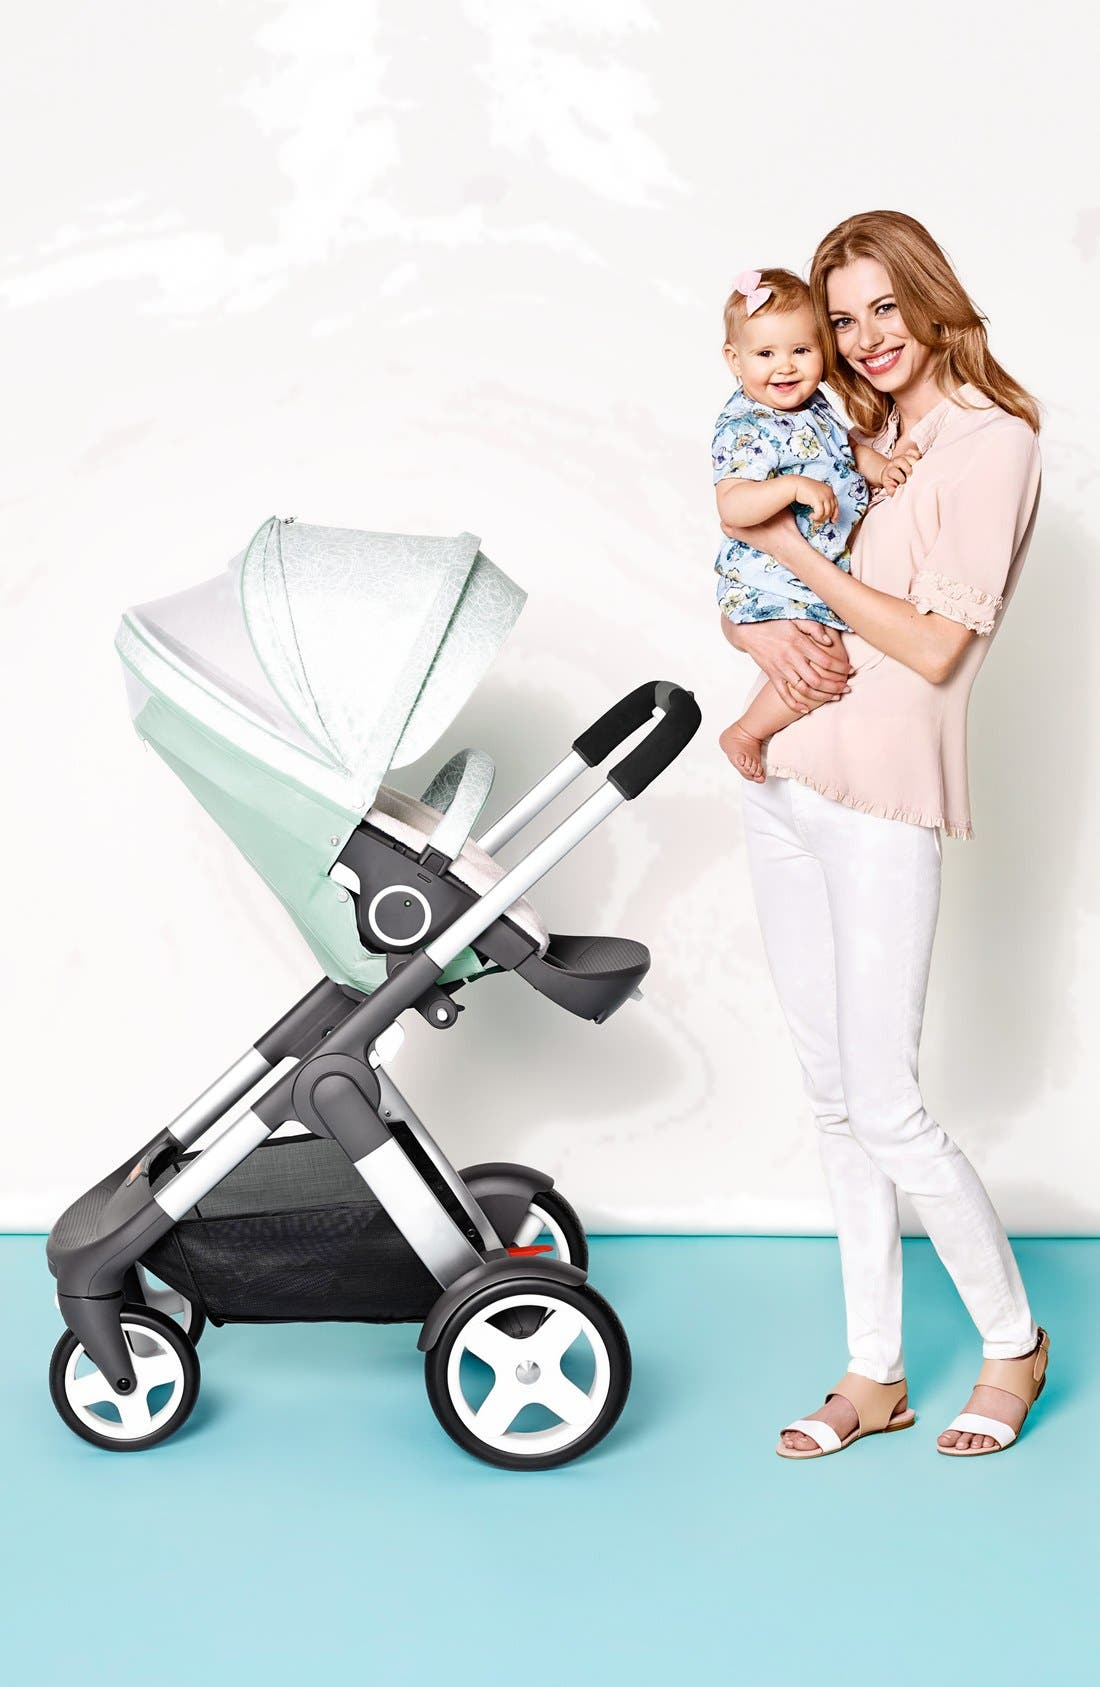 Baby 'Xplory<sup>®</sup> Stroller Summer Kit' Shade Set,                             Alternate thumbnail 6, color,                             SALTY BLUE